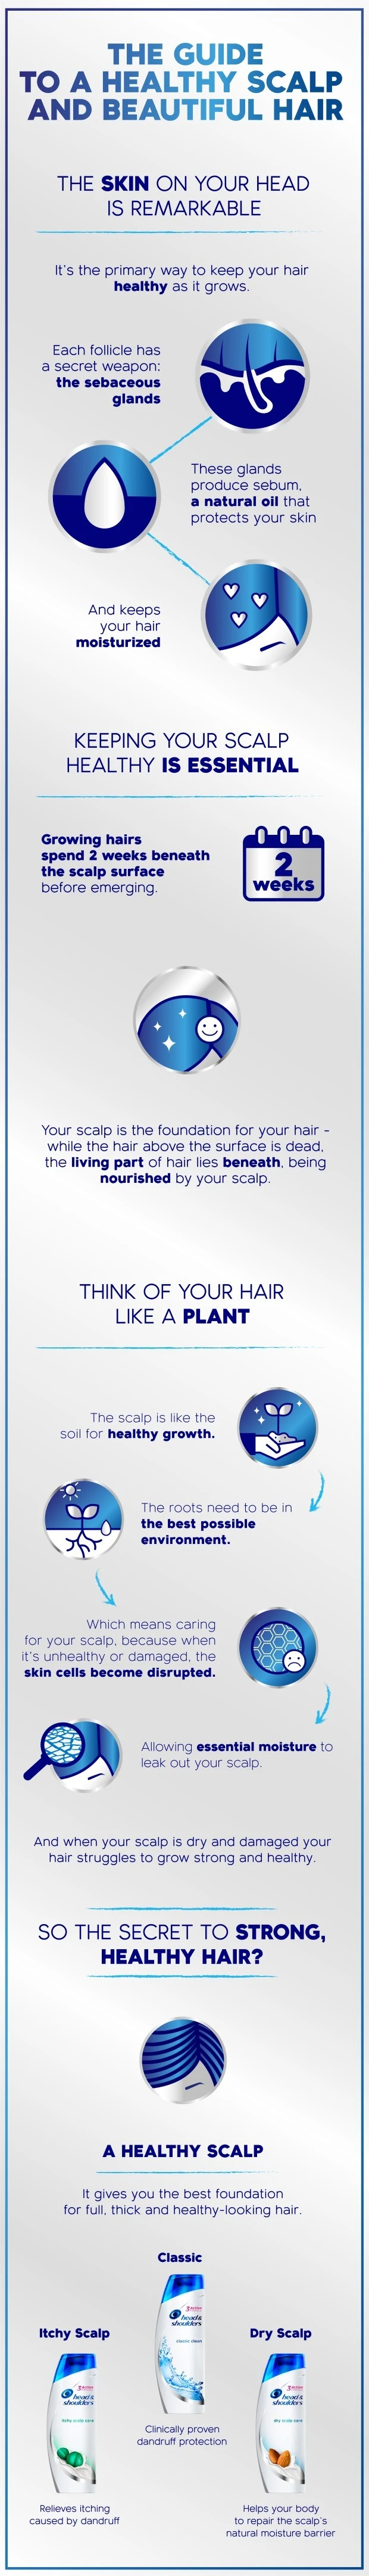 When To Wash Your Hair - Article Image